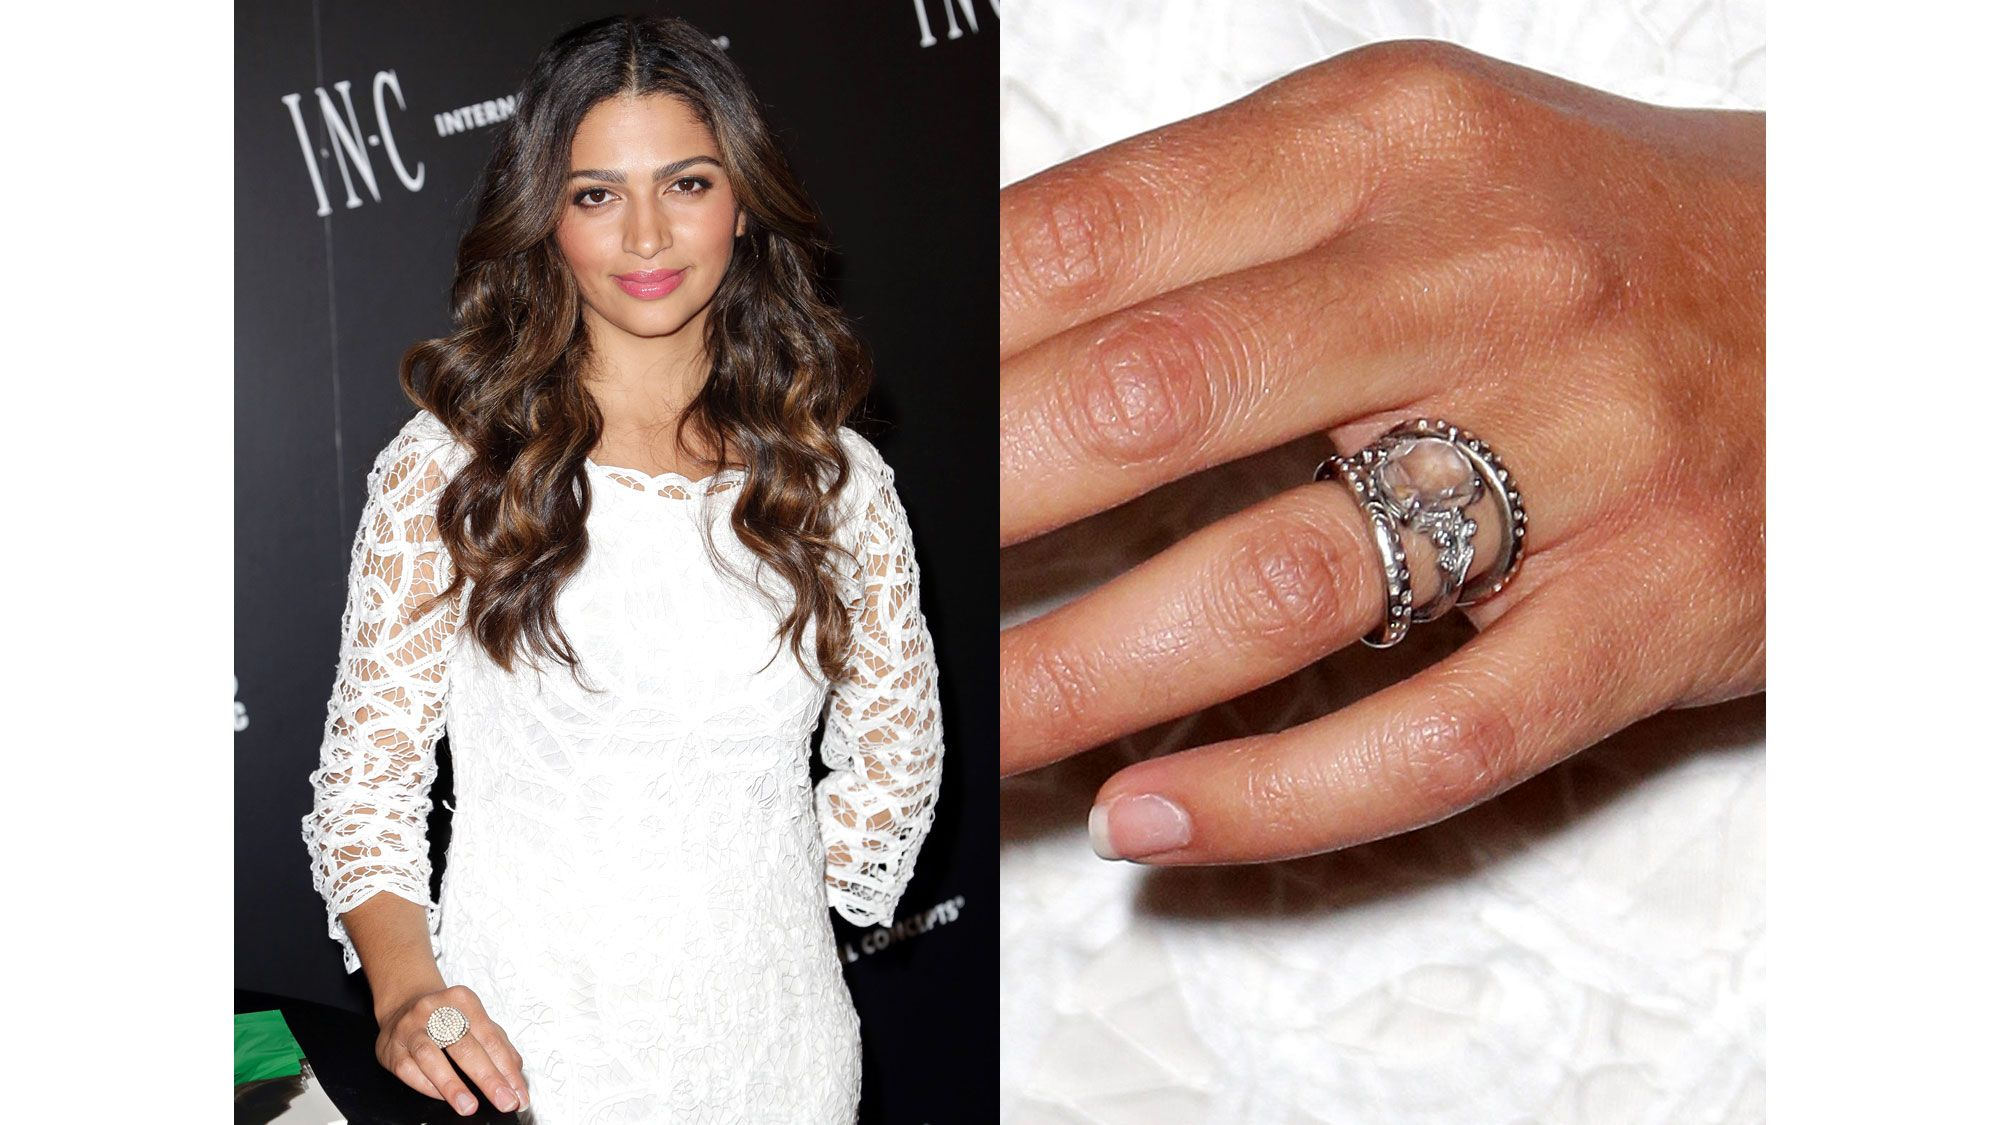 stars bands movie celeb for celebrity gorgeous wedding rings ring and best engagement